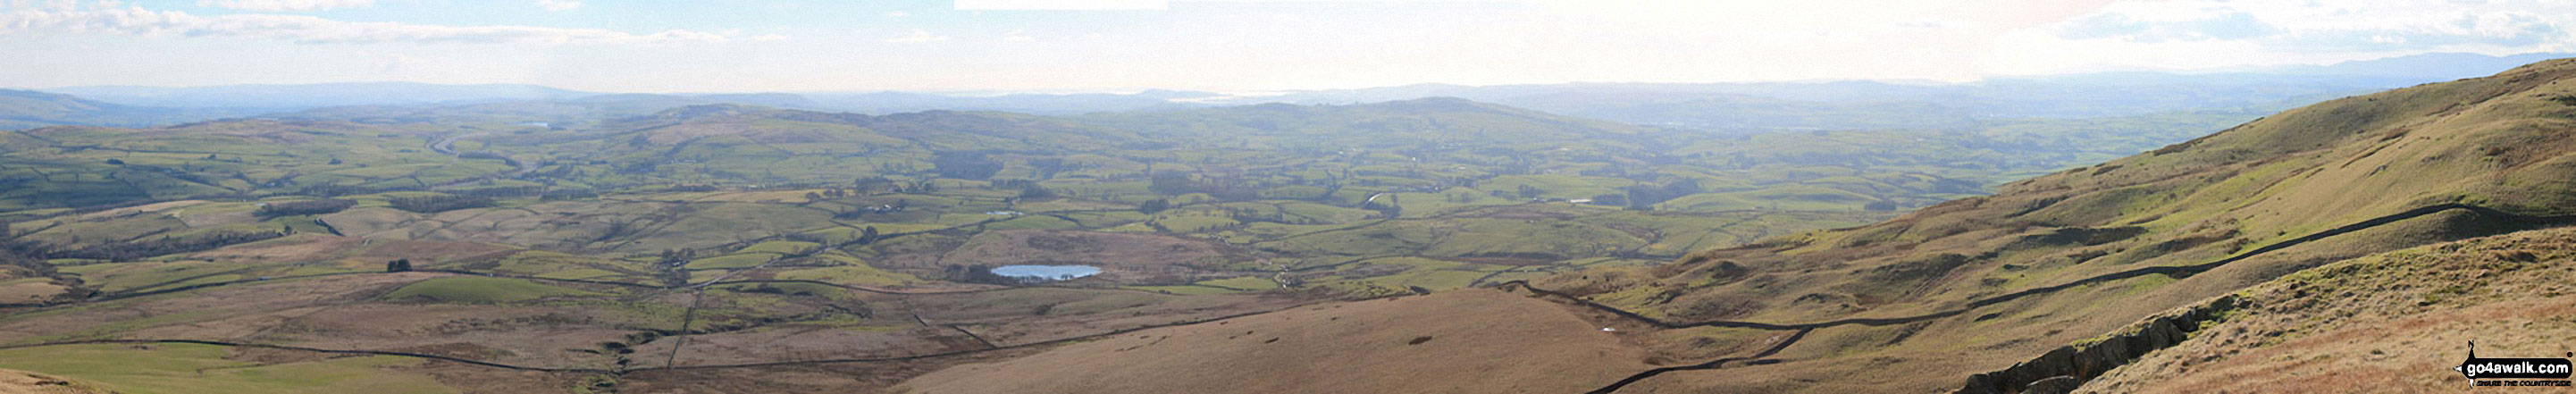 The view south-east and west from the summit of Grayrigg Pike (Grayrigg Forest)